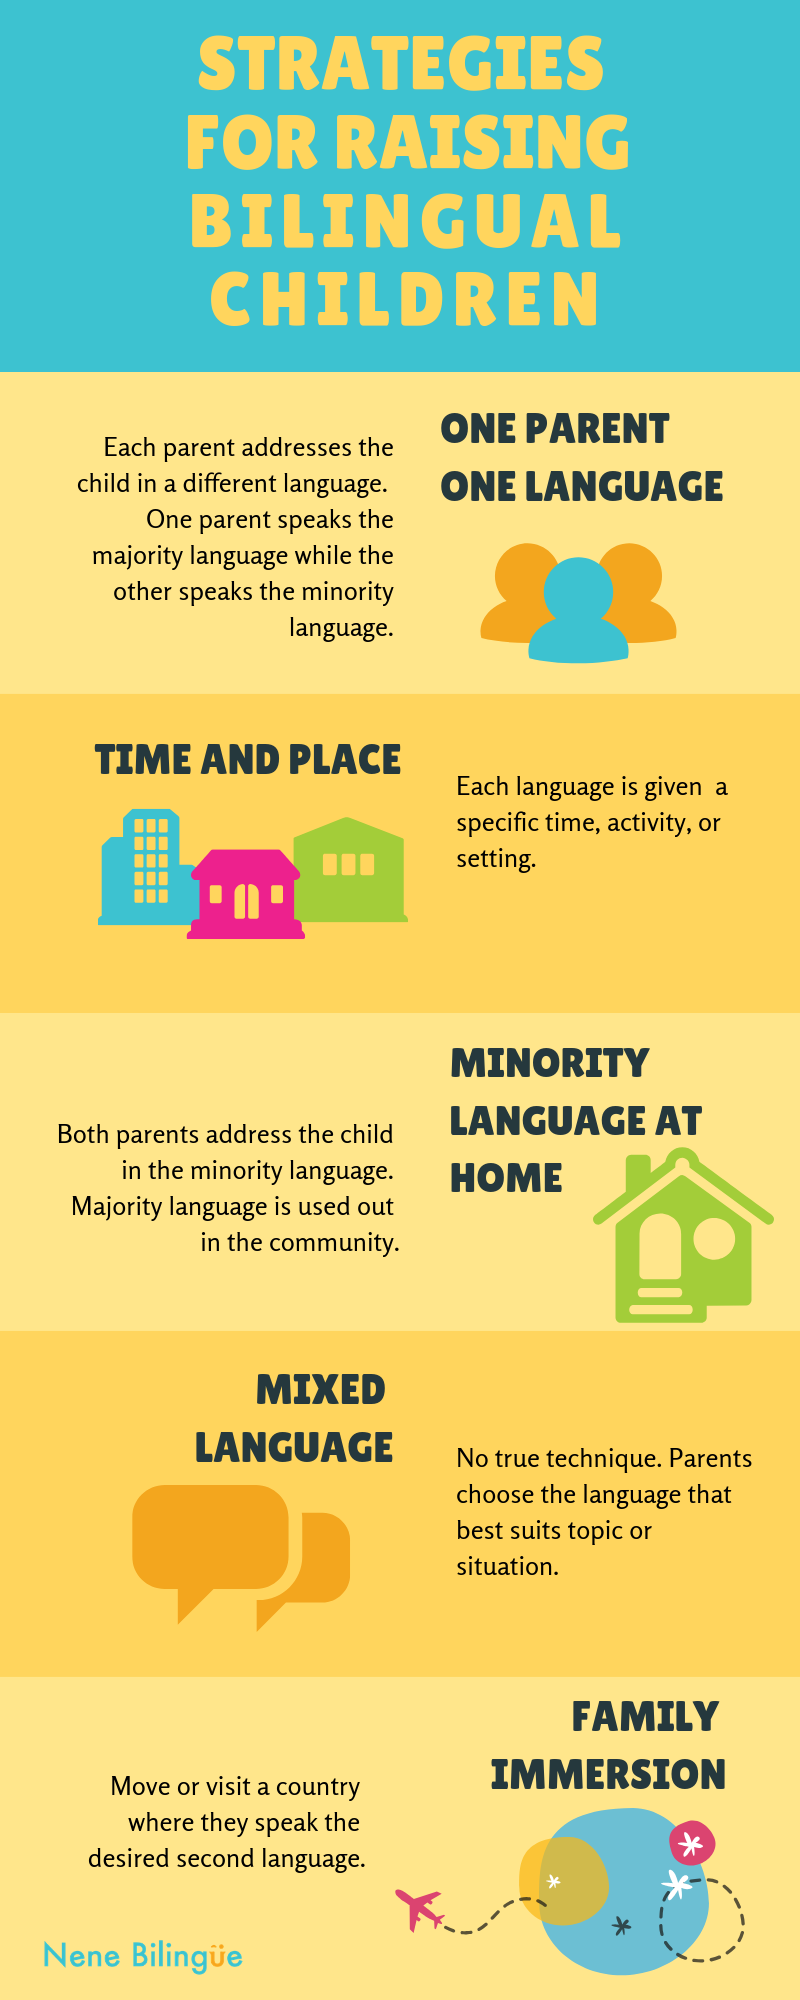 Infographic of strategies for raising bilingual children. 1. One Parent One Language two parents with their child 2. Time and Place three buildings 3. Minority Language in the Home icons of a house 4. Mixed Language icon of speech bubbles and 5 Family Immersion icon of airplane in flight